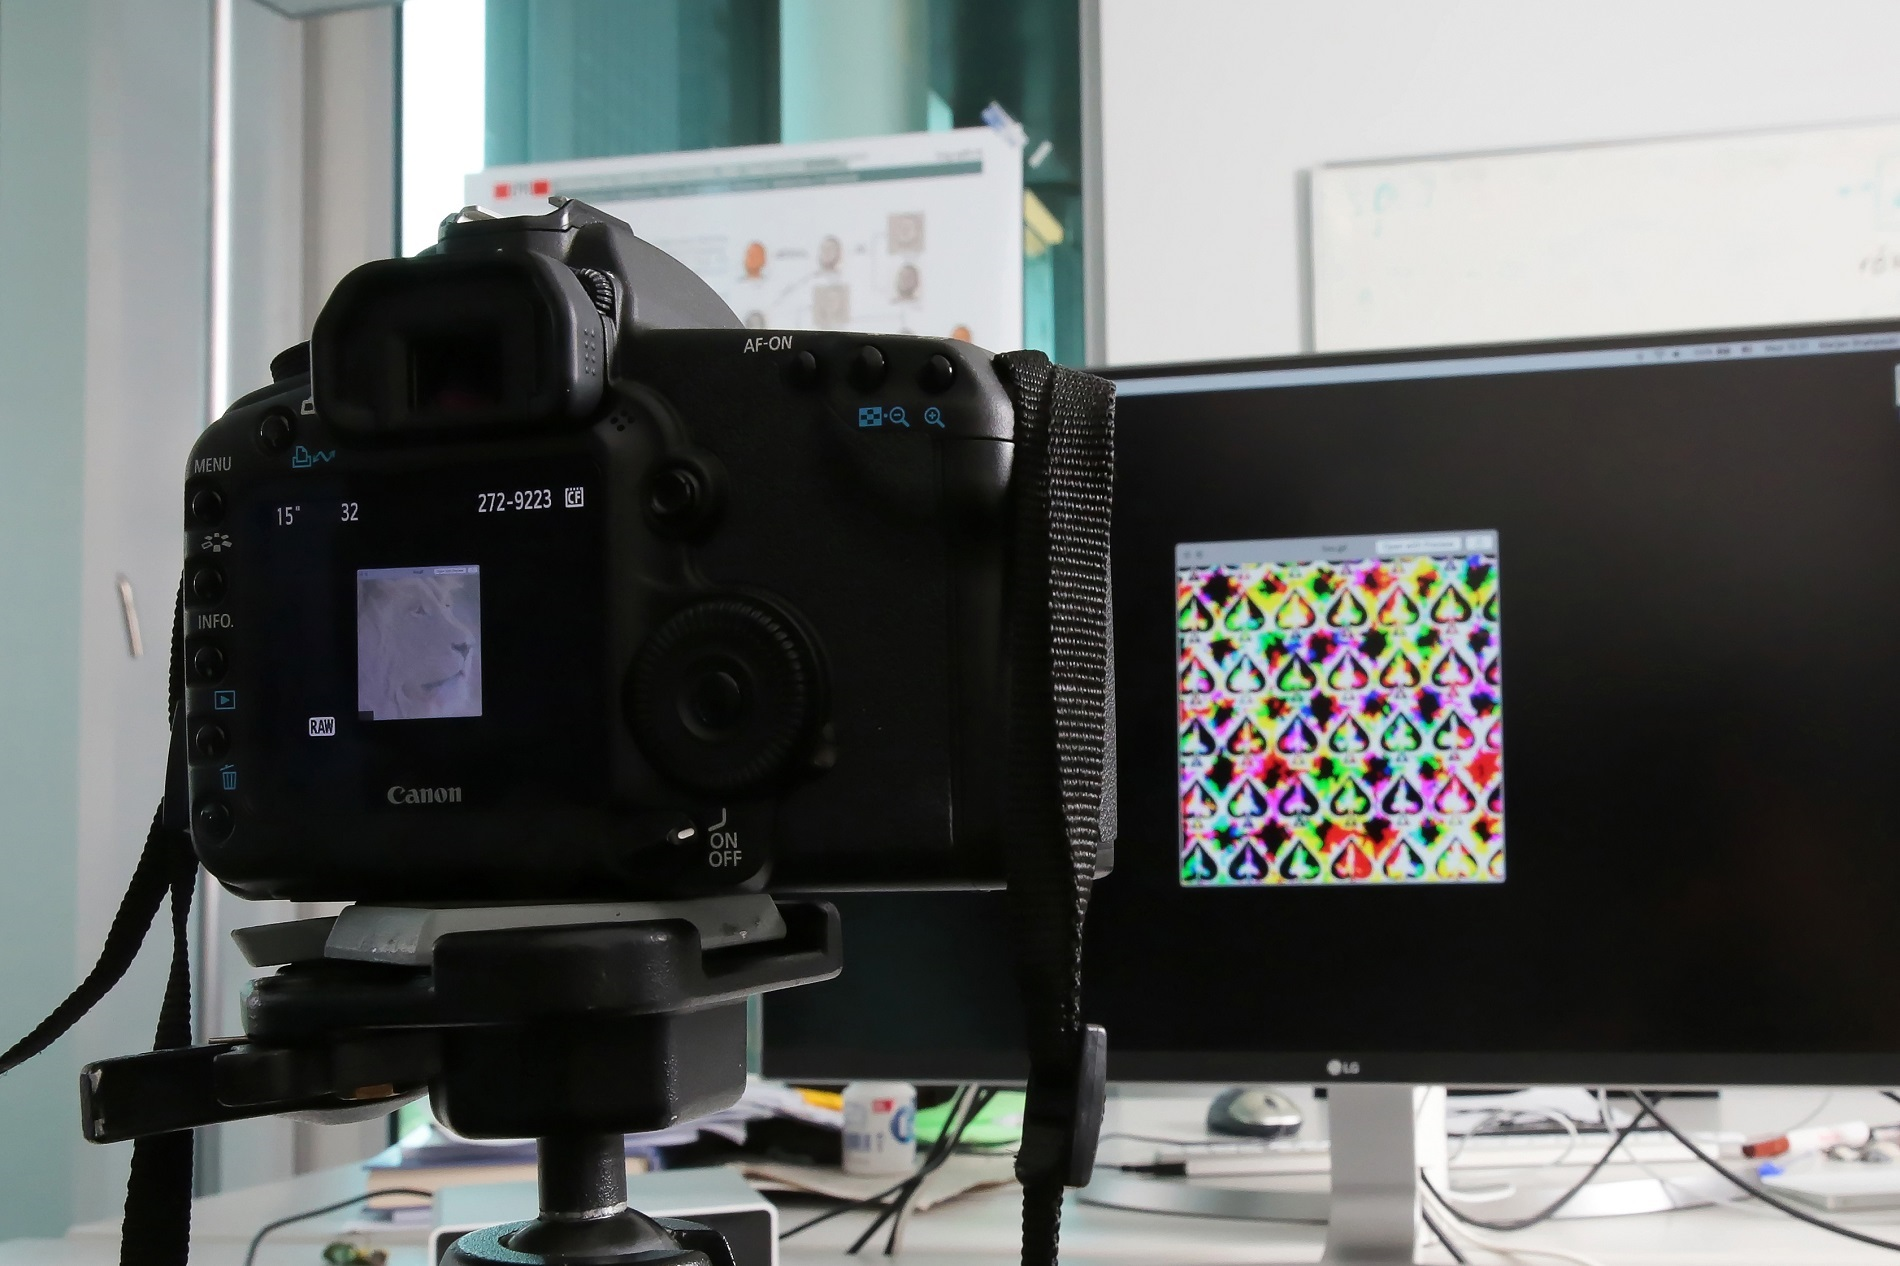 EPFL researchers took advantage of the limits of human vision to hide an image in a video